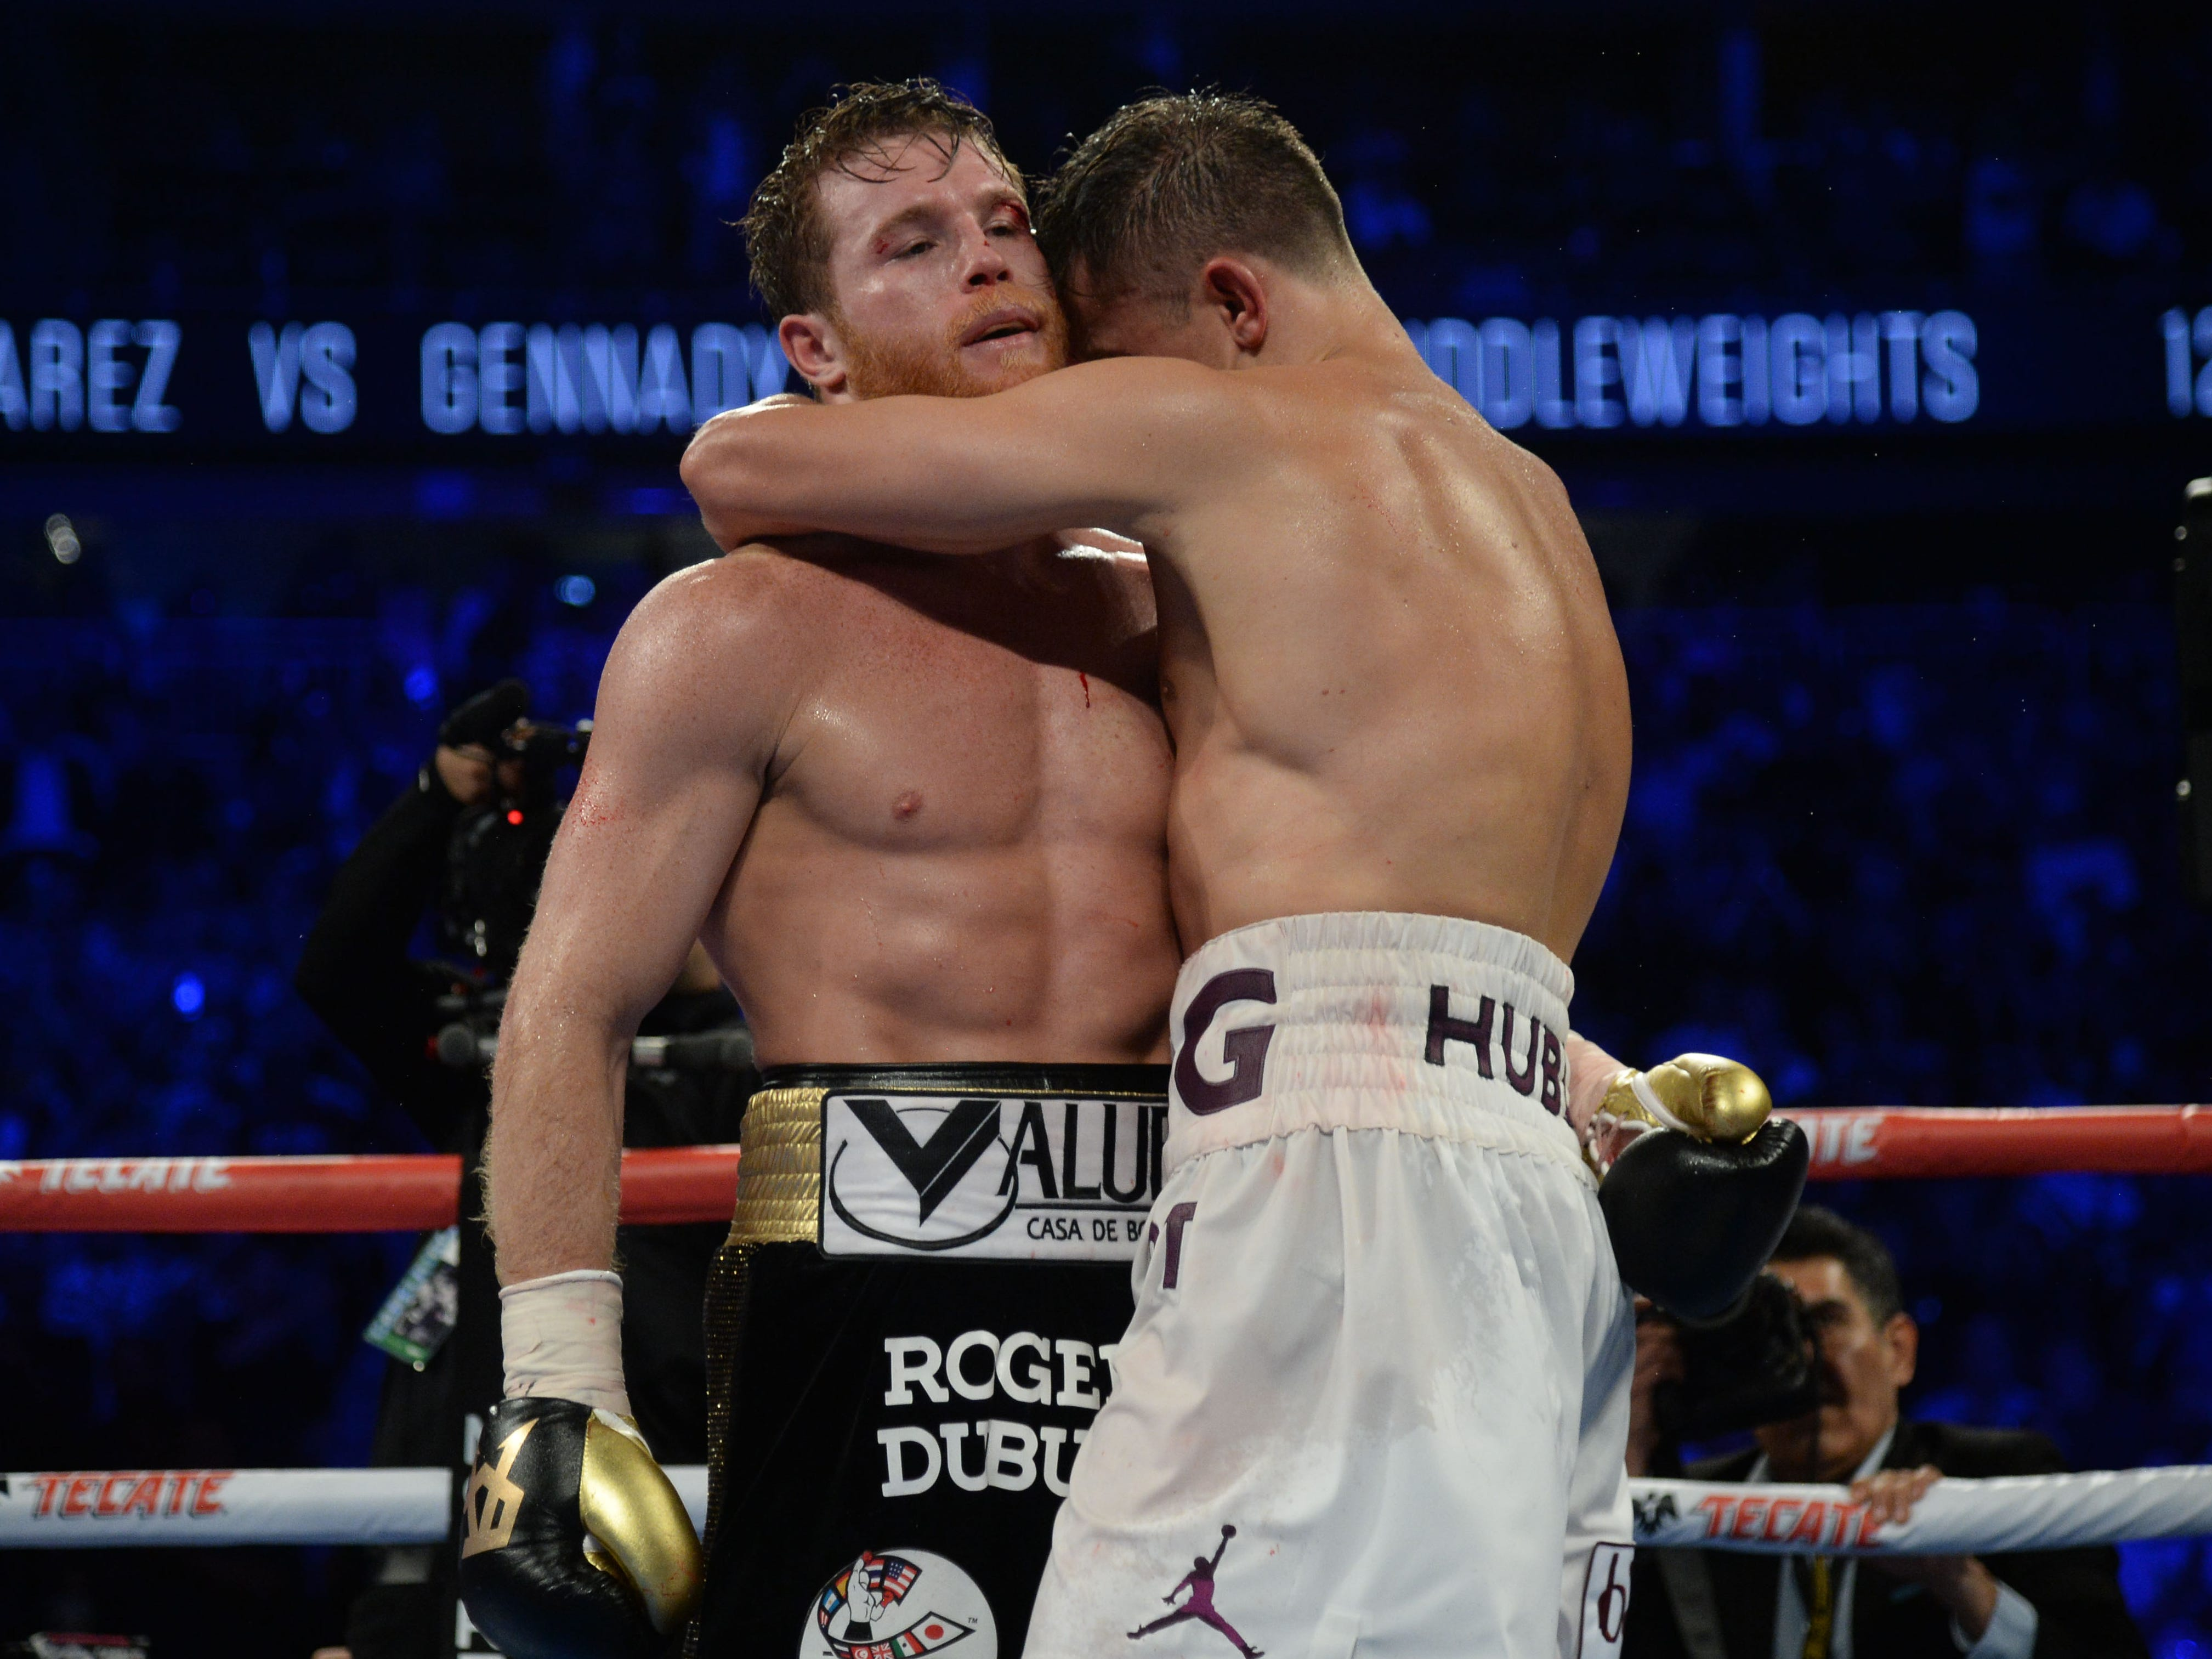 Exhausted, Alvarez and Golovkin embrace after the fight went the distance.